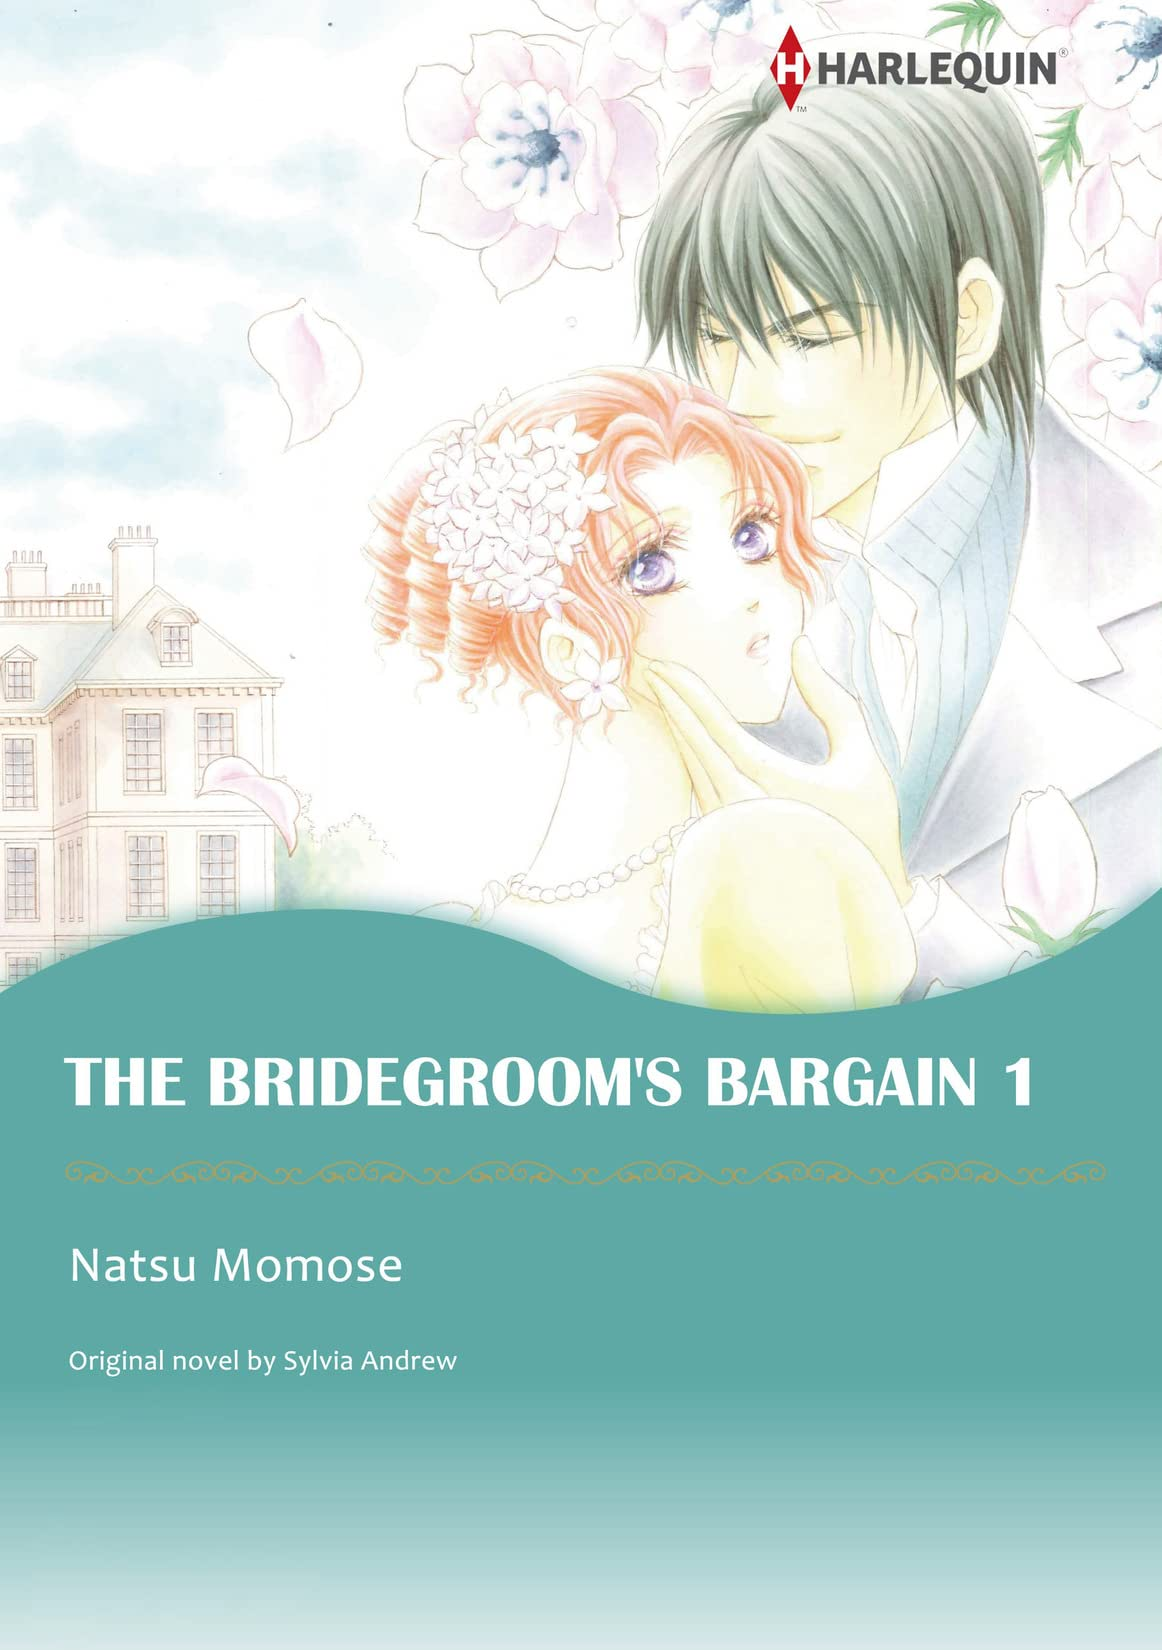 The Bridegroom's Bargain Vol. 1